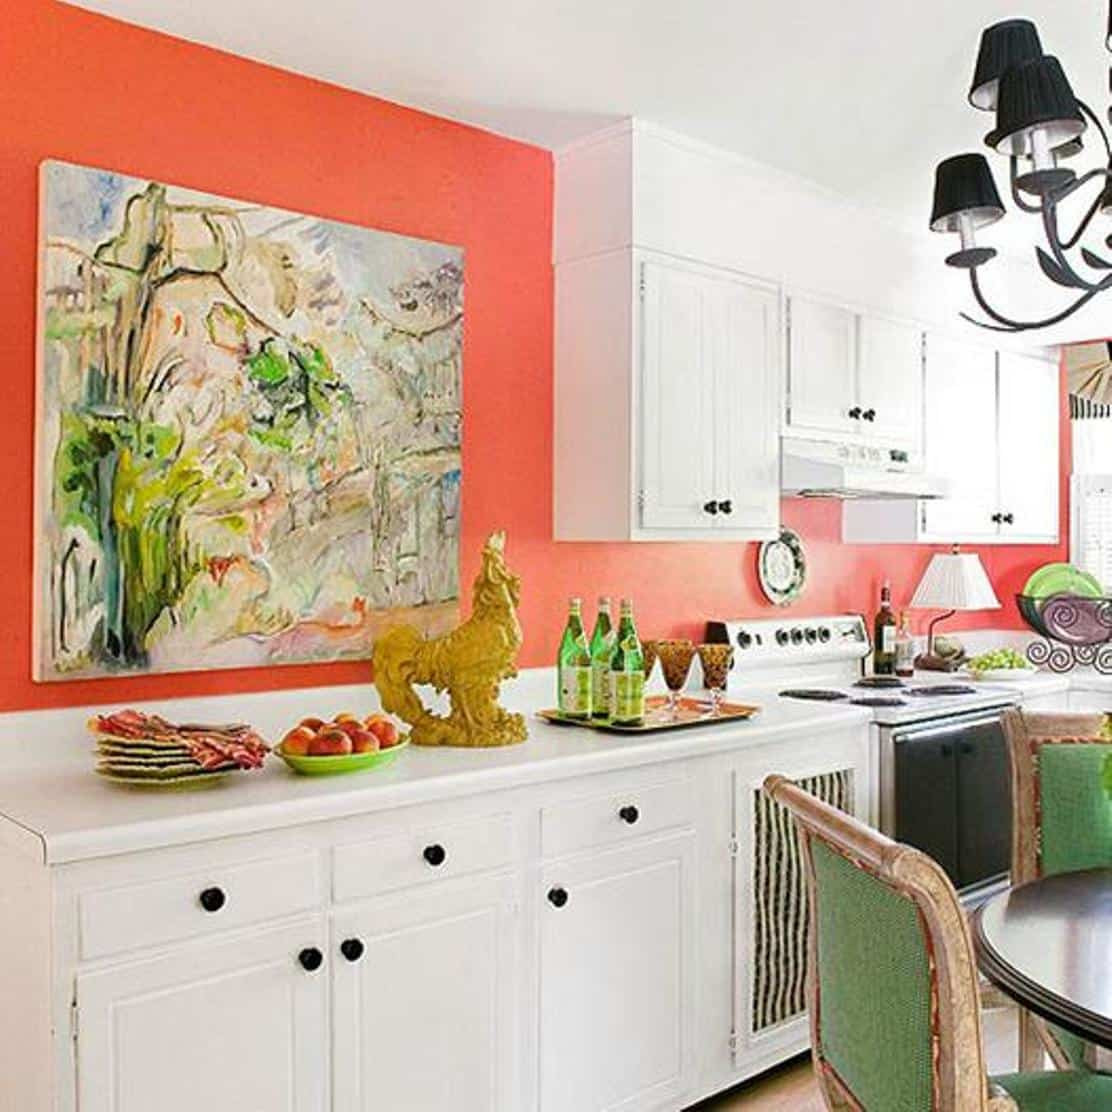 Best ideas about Coral Kitchen Decor . Save or Pin Decorating Kitchen With Coral Color Decorating Ideas Now.